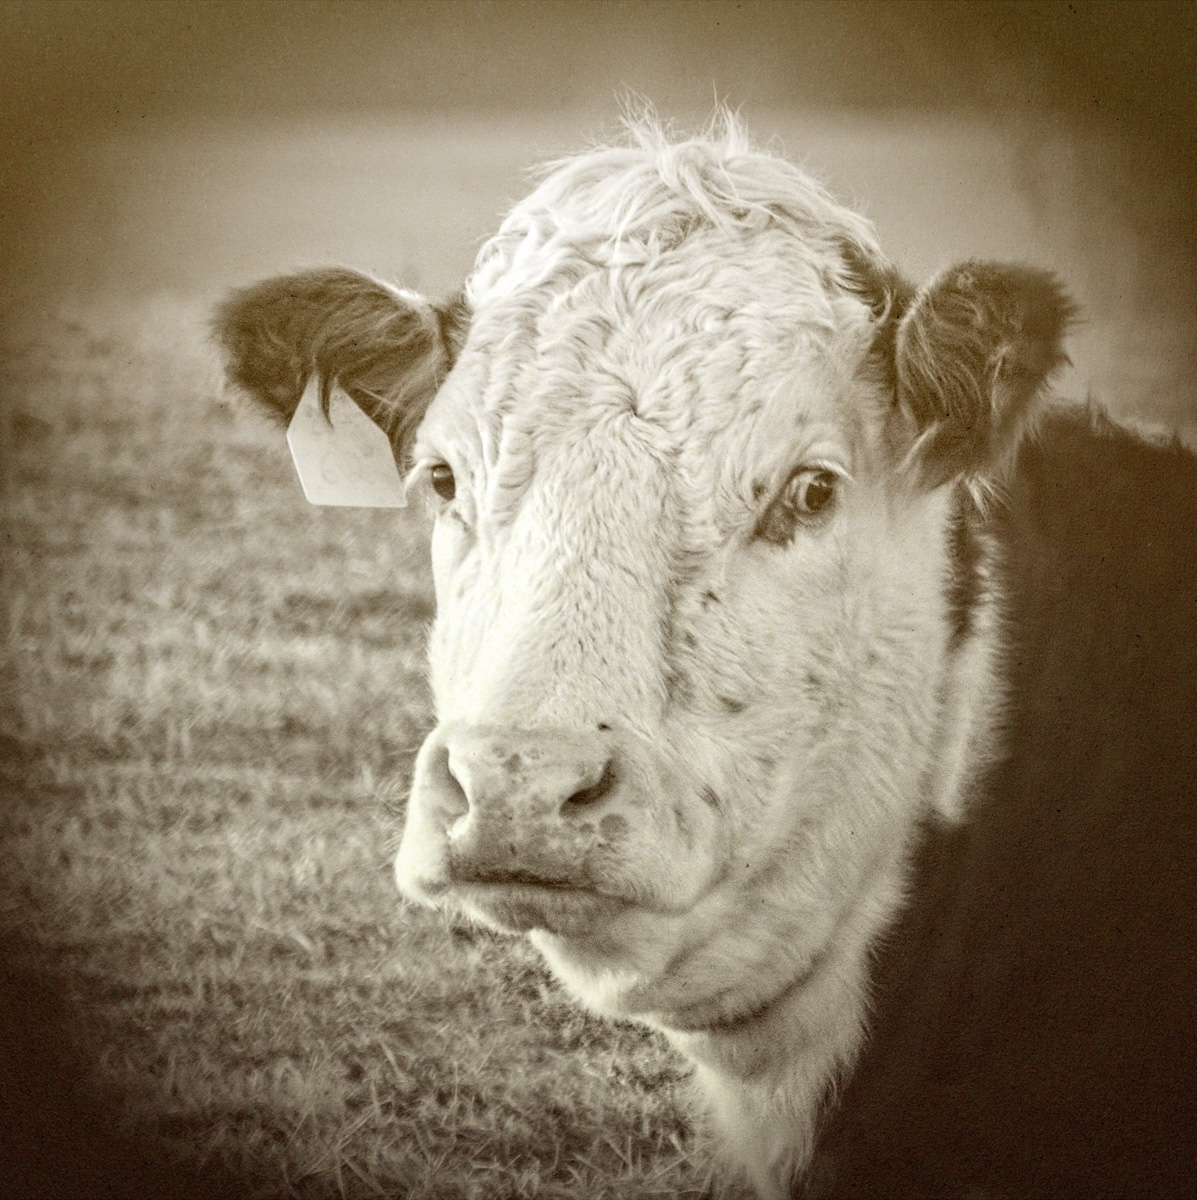 """'for it is said, """"God sends a curst cow short horns,"""" but to a cow too curst, he sends none'"""